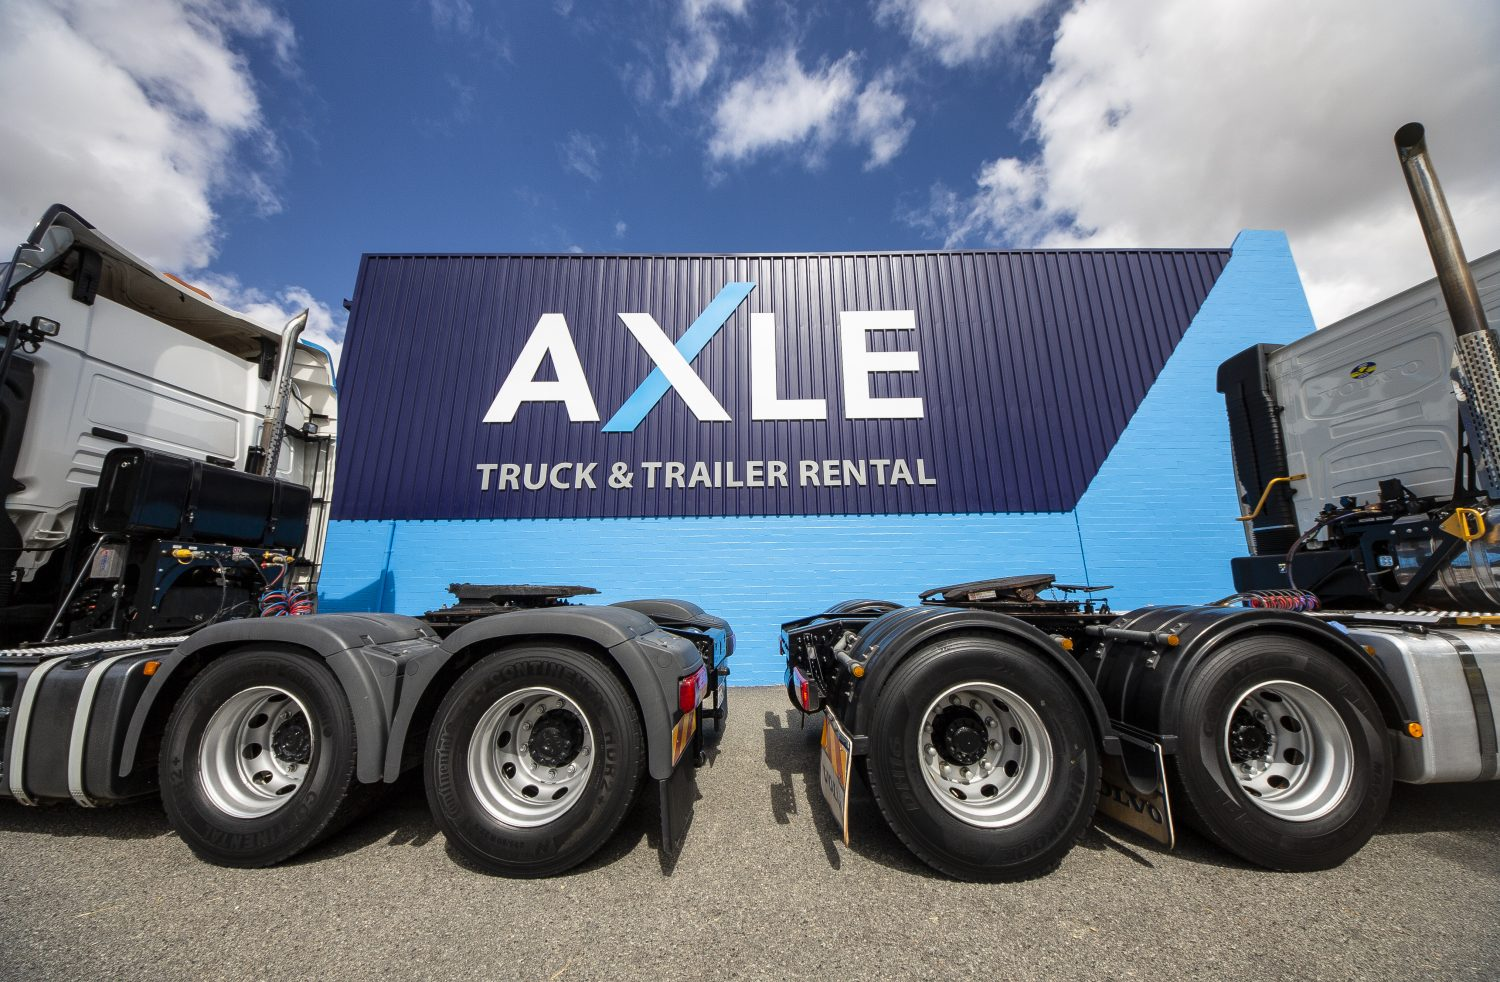 Axle Truck and Trailer